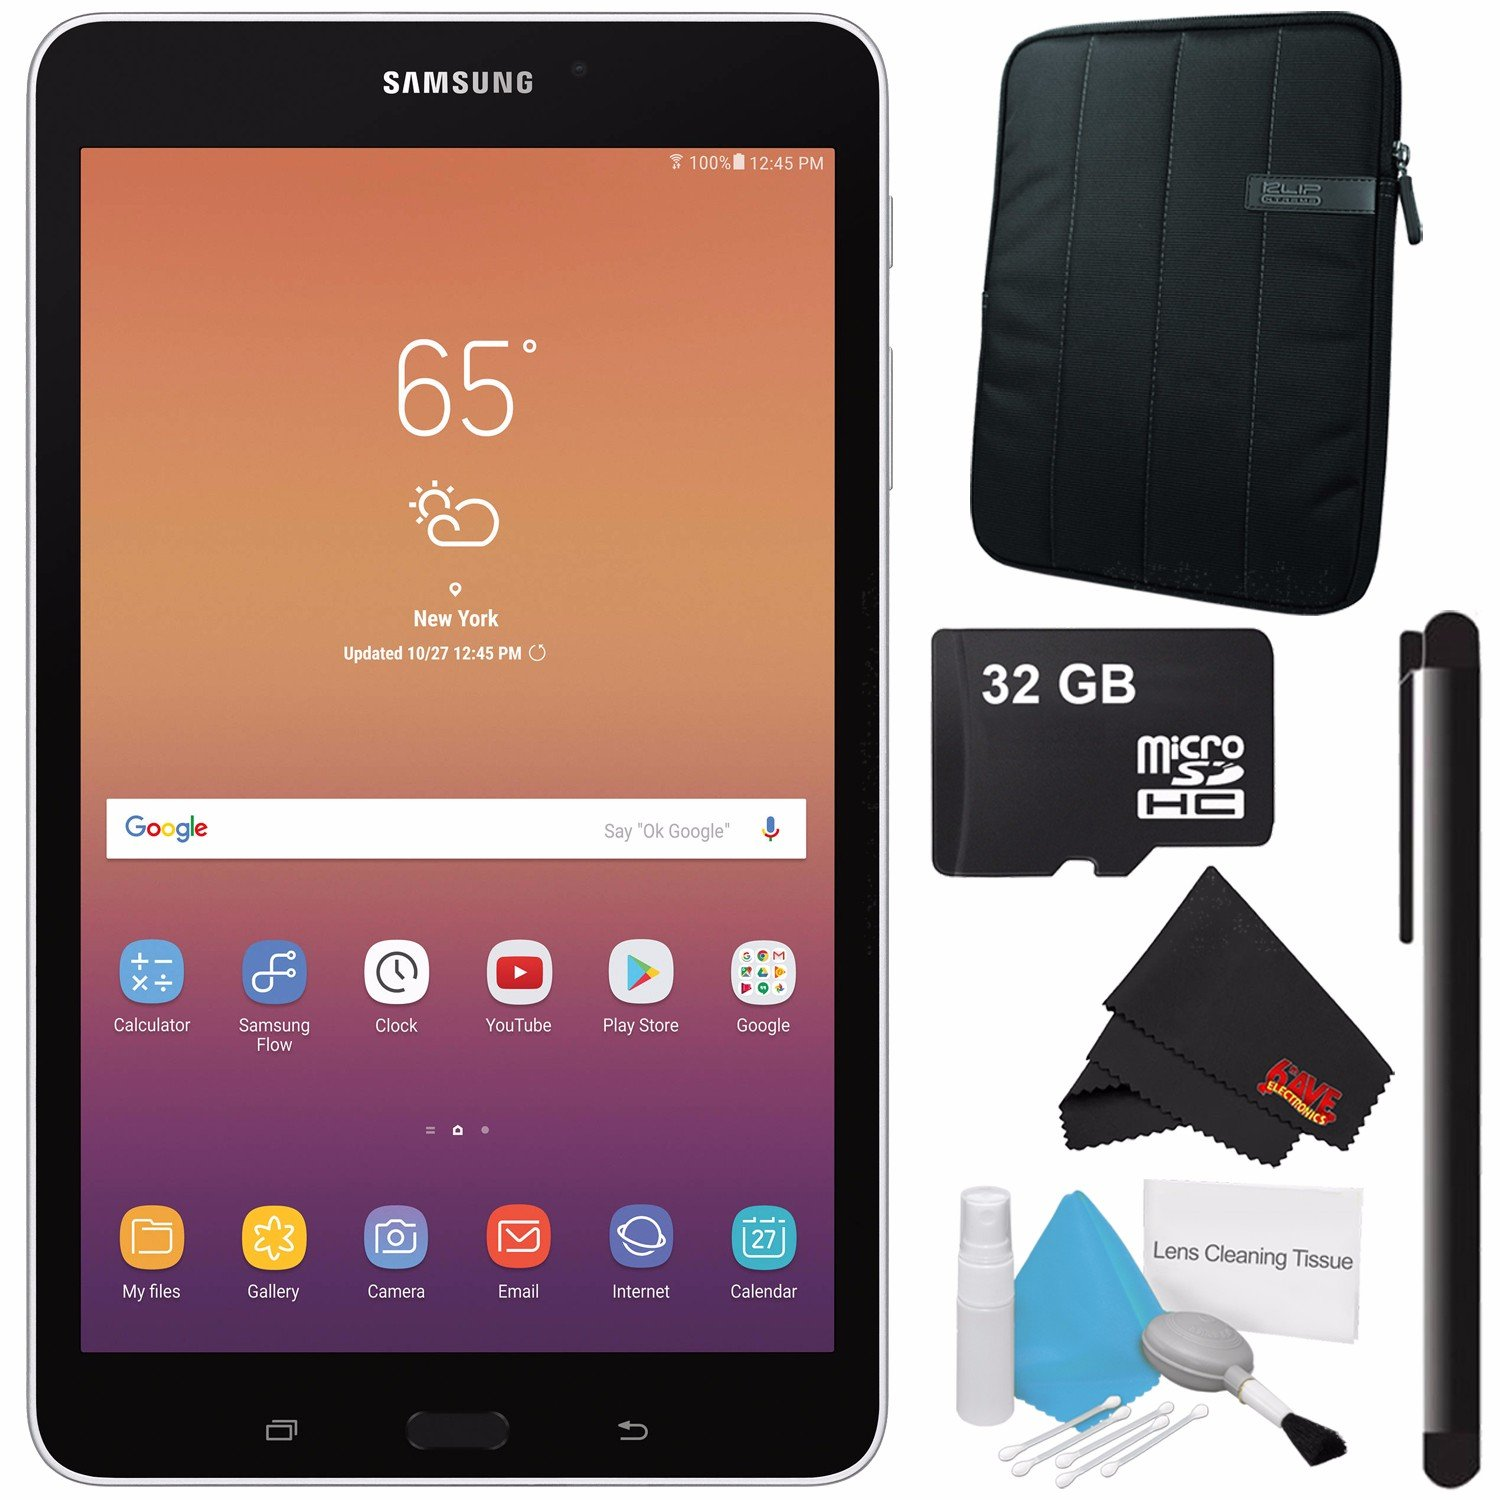 Samsung 8.0'' Galaxy Tab A 8.0 32GB Tablet (Wi-Fi Only, Silver) SM-T380NZSEXAR + Universal Stylus for Tablets + Tablet Neoprene Sleeve 10.1'' Case (Black) + 32GB Class 10 Micro SD Memory Card Bundle by Samsung